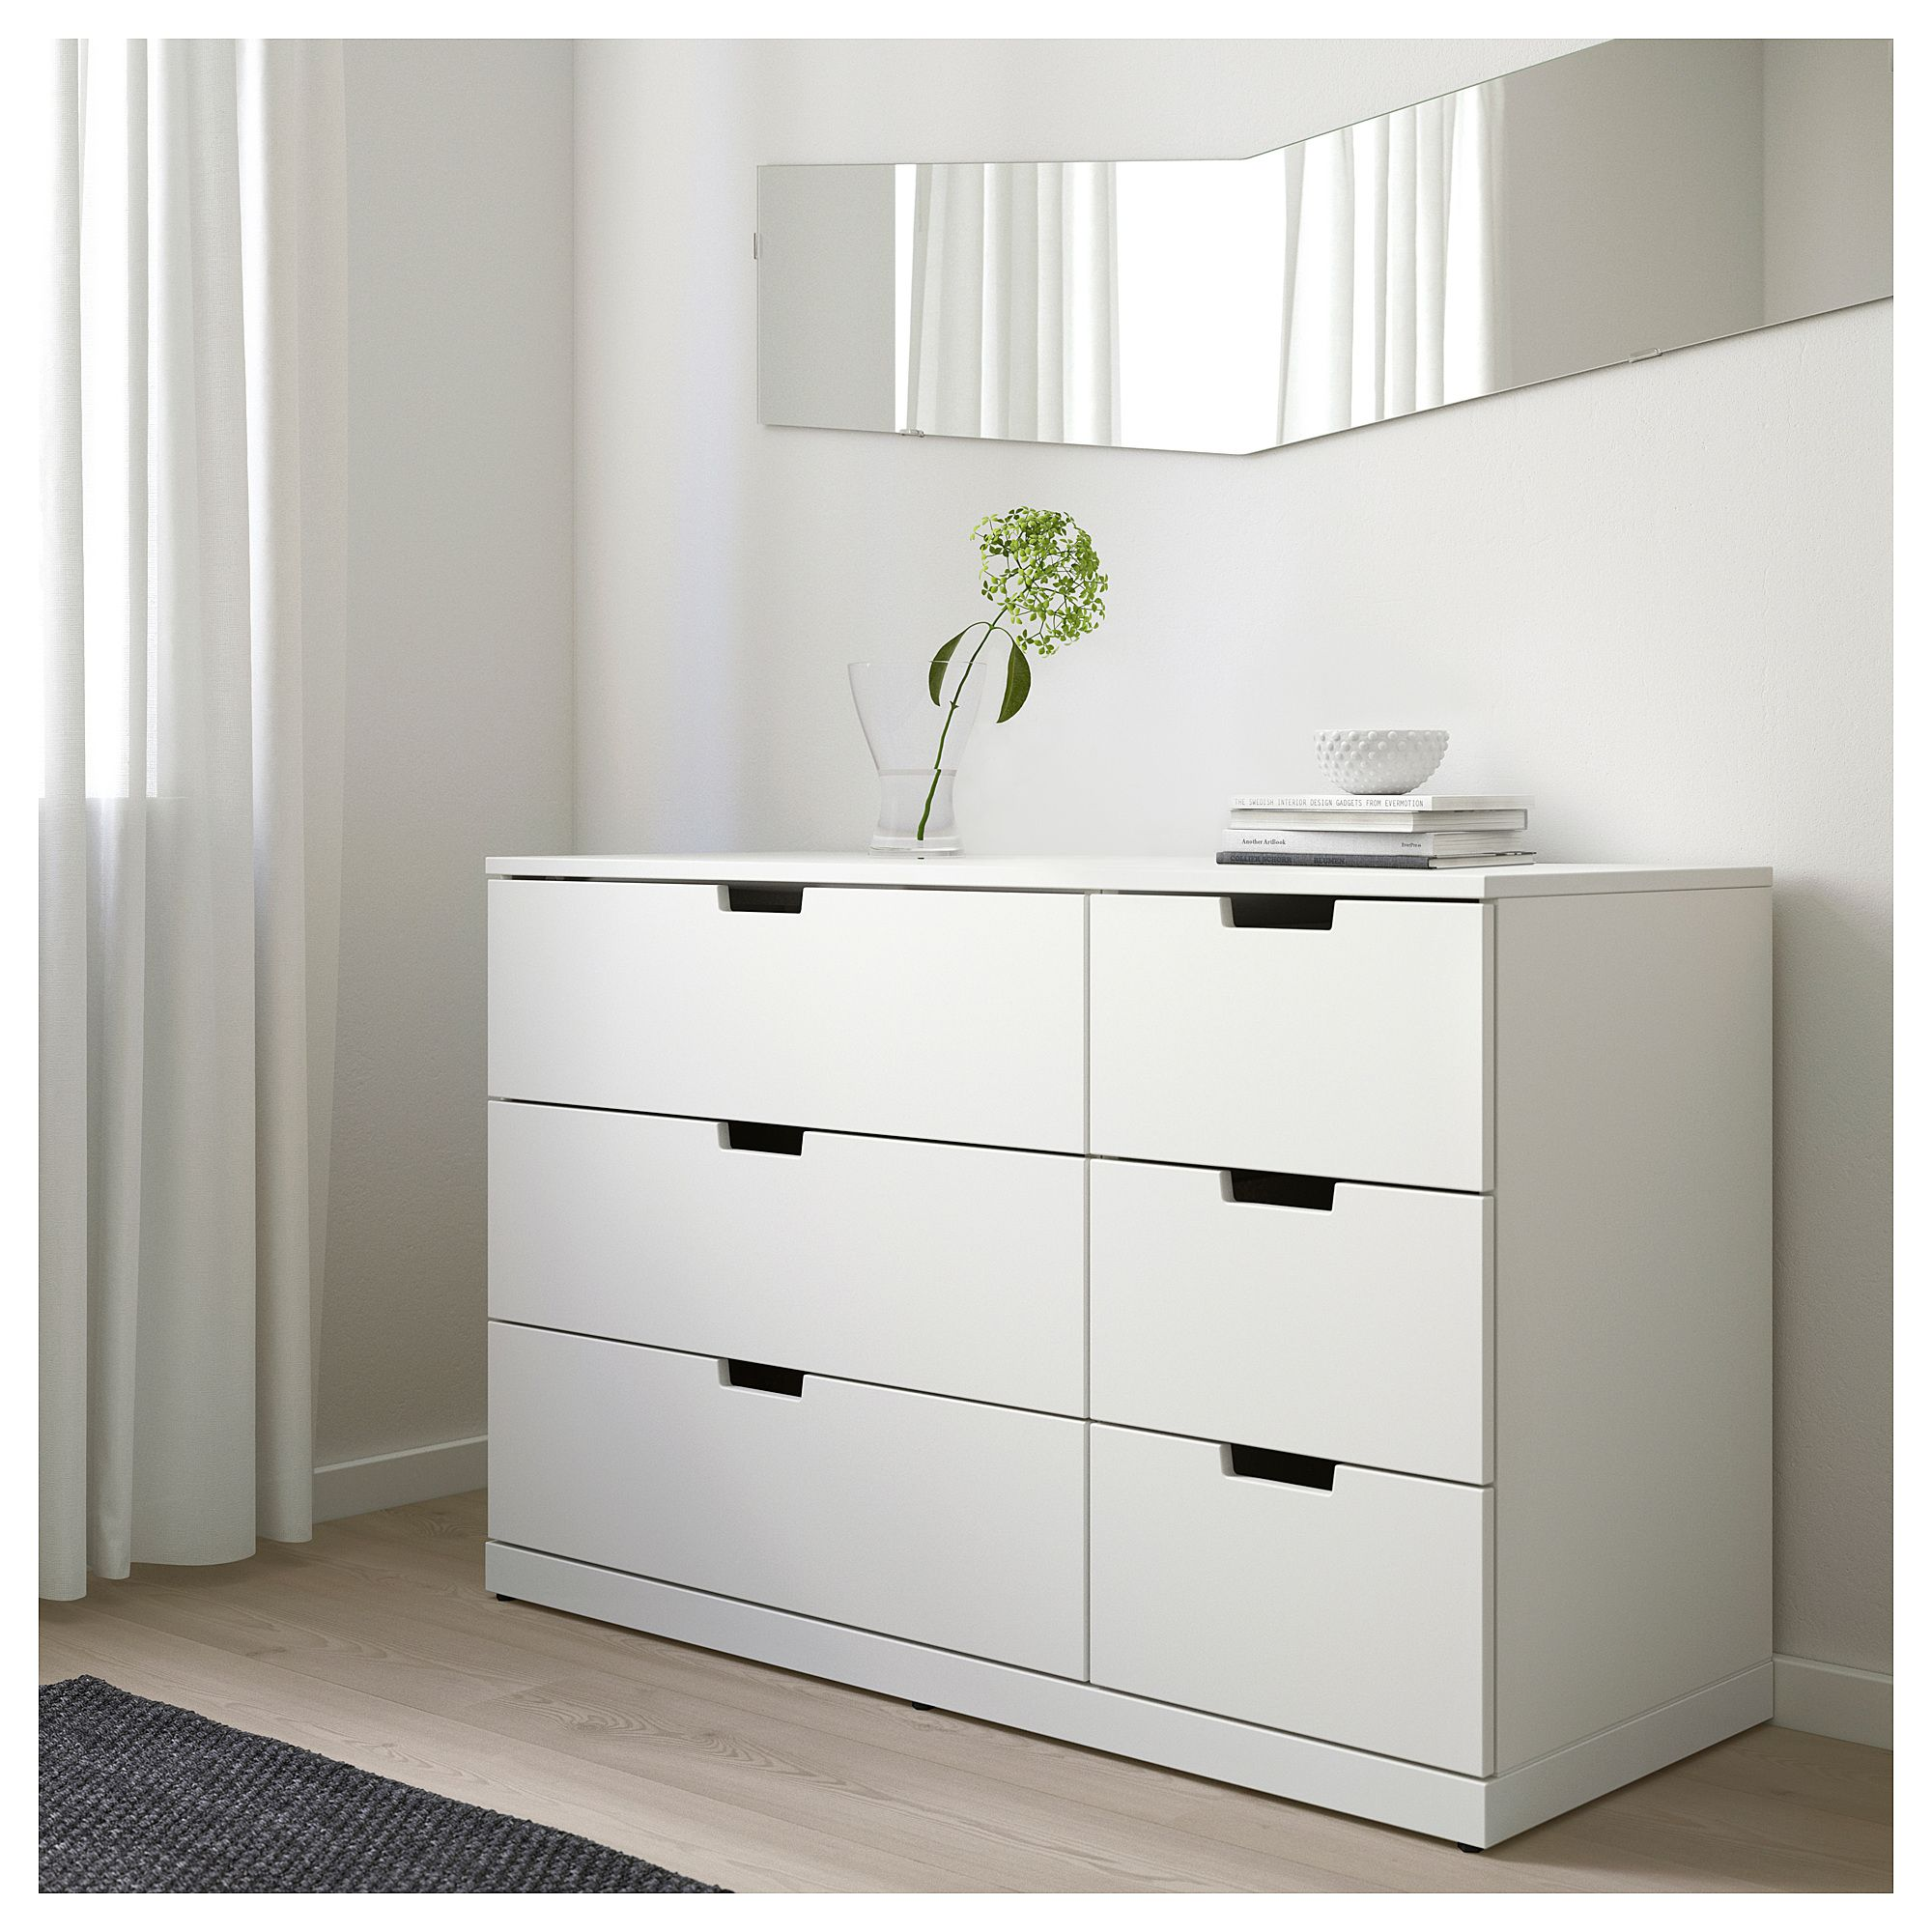 Nordli Chest Of 6 Drawers Anthracite 120x76 Cm Ikea Ikea Nordli Dresser Drawers 6 Drawer Dresser [ 2000 x 2000 Pixel ]